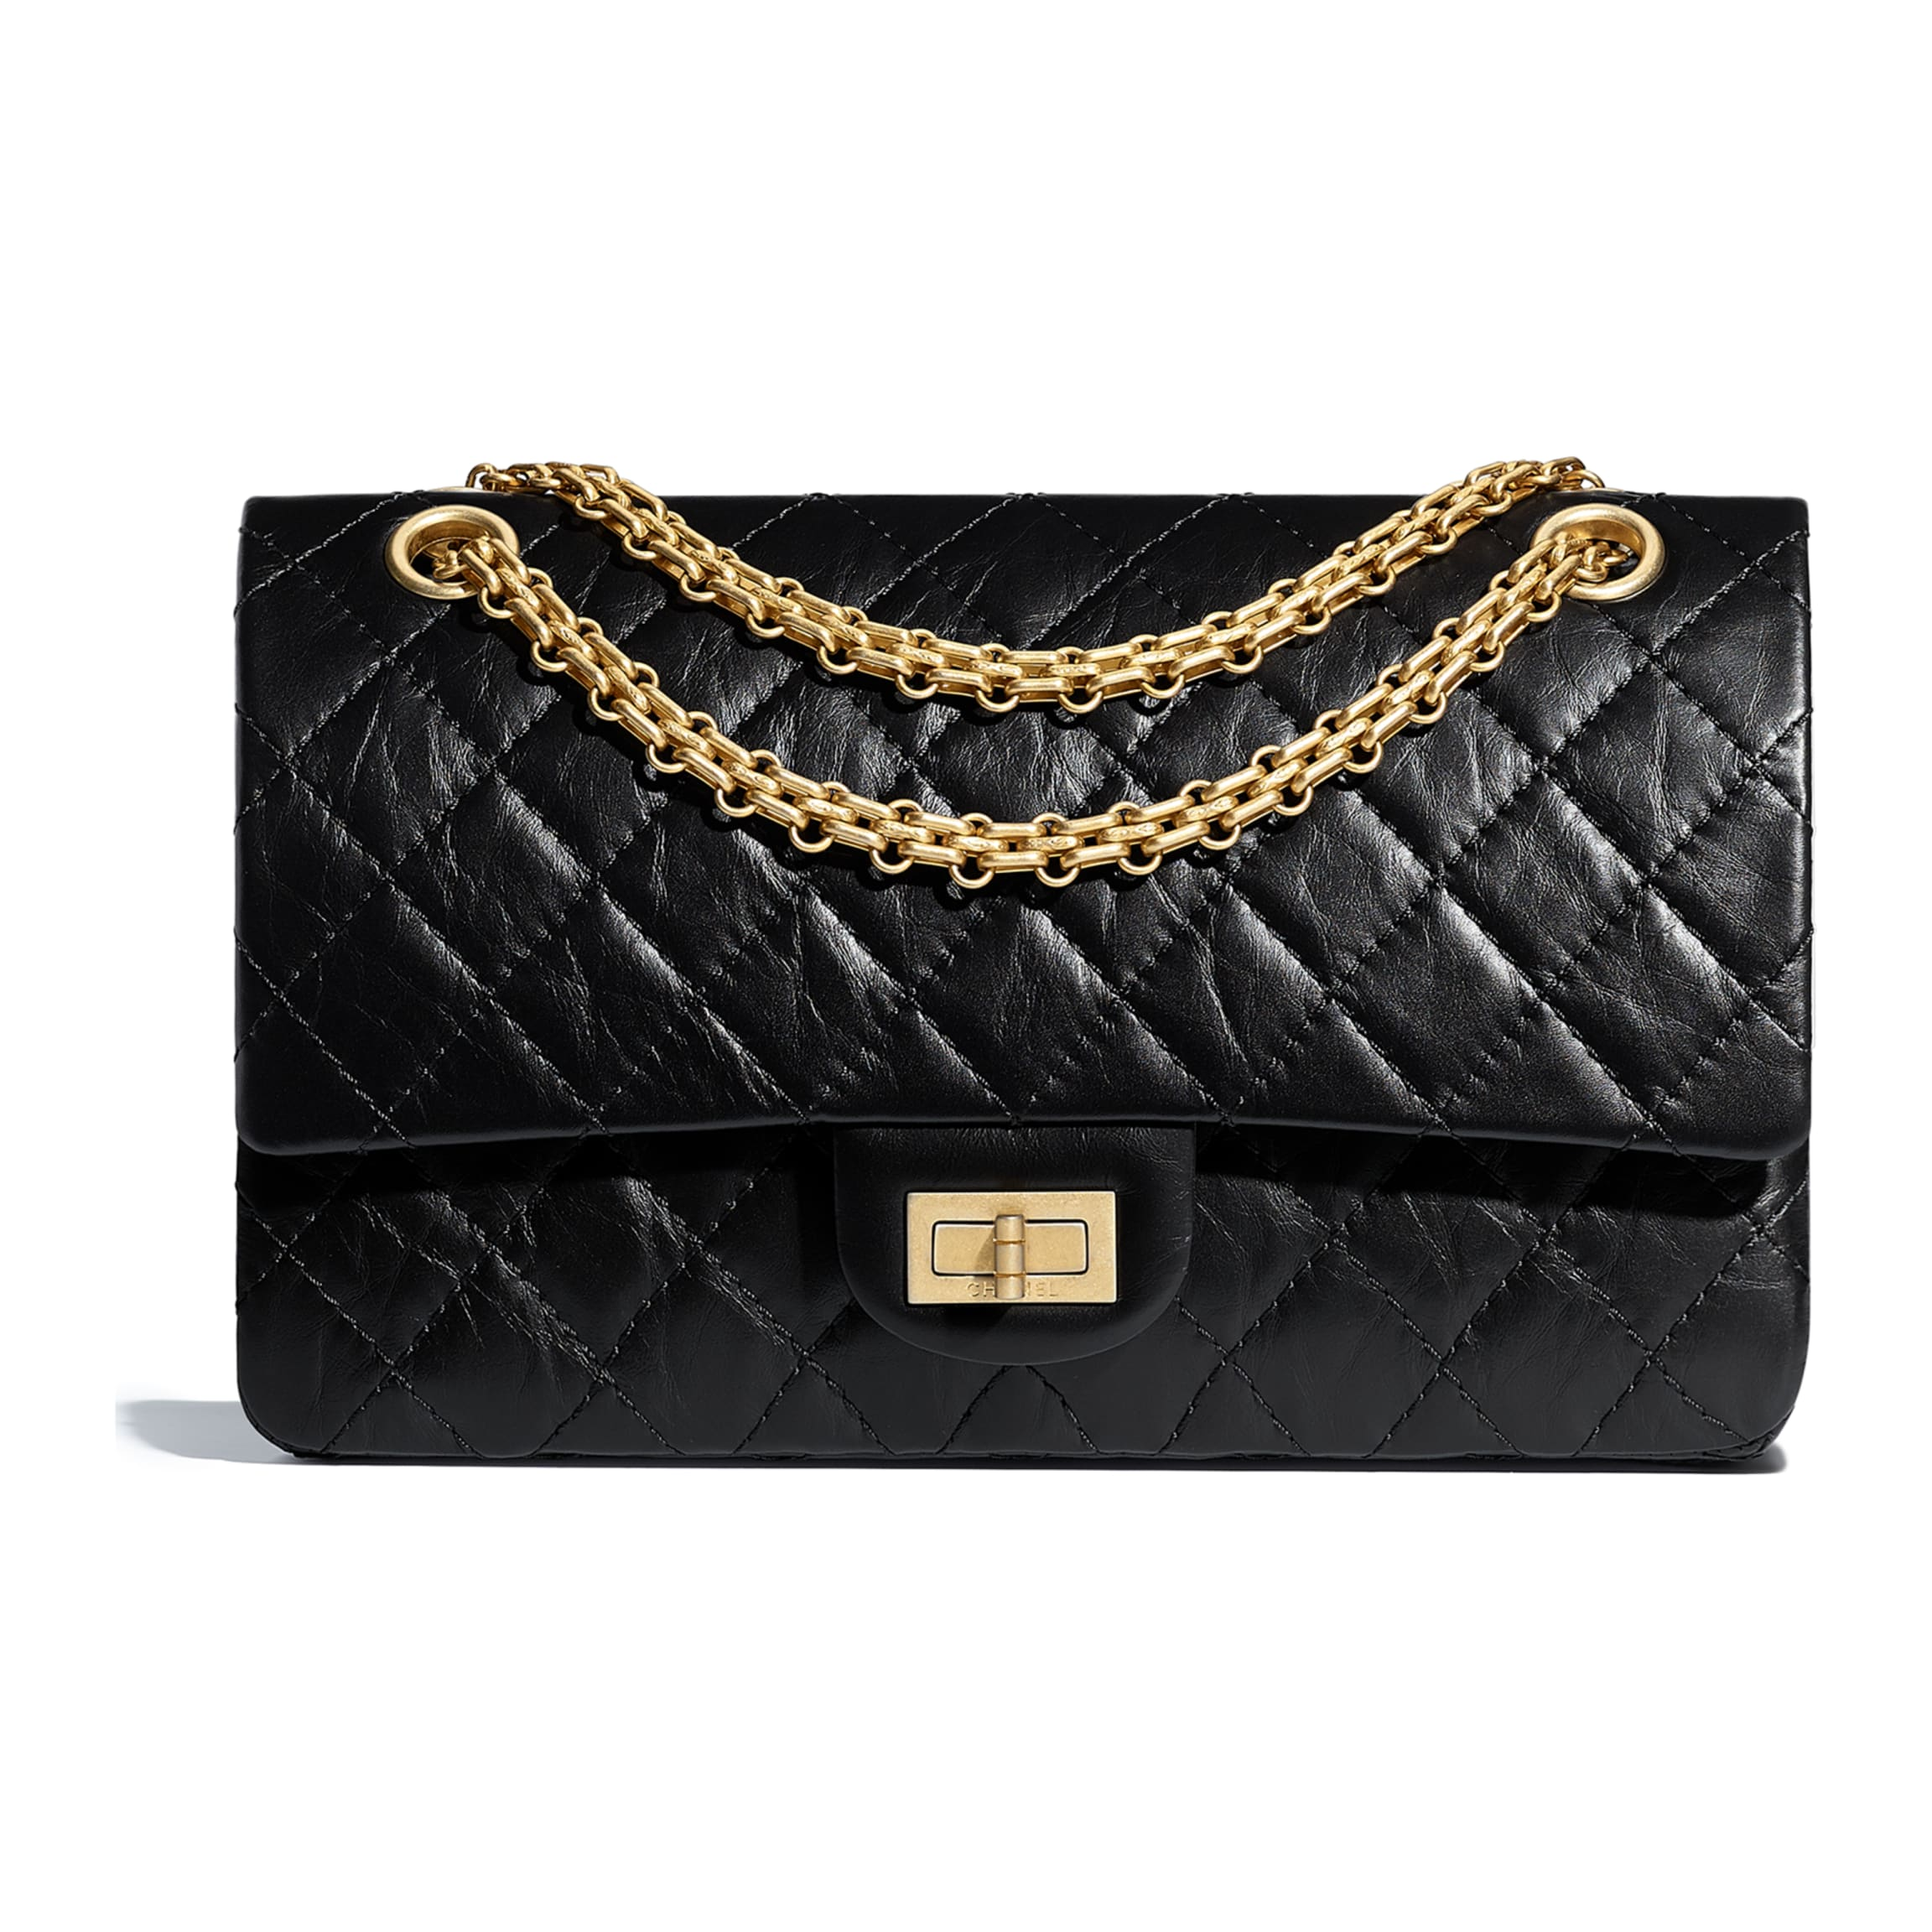 How Much Is Chanel? Chanel Price Guide how much is chanel 2.55